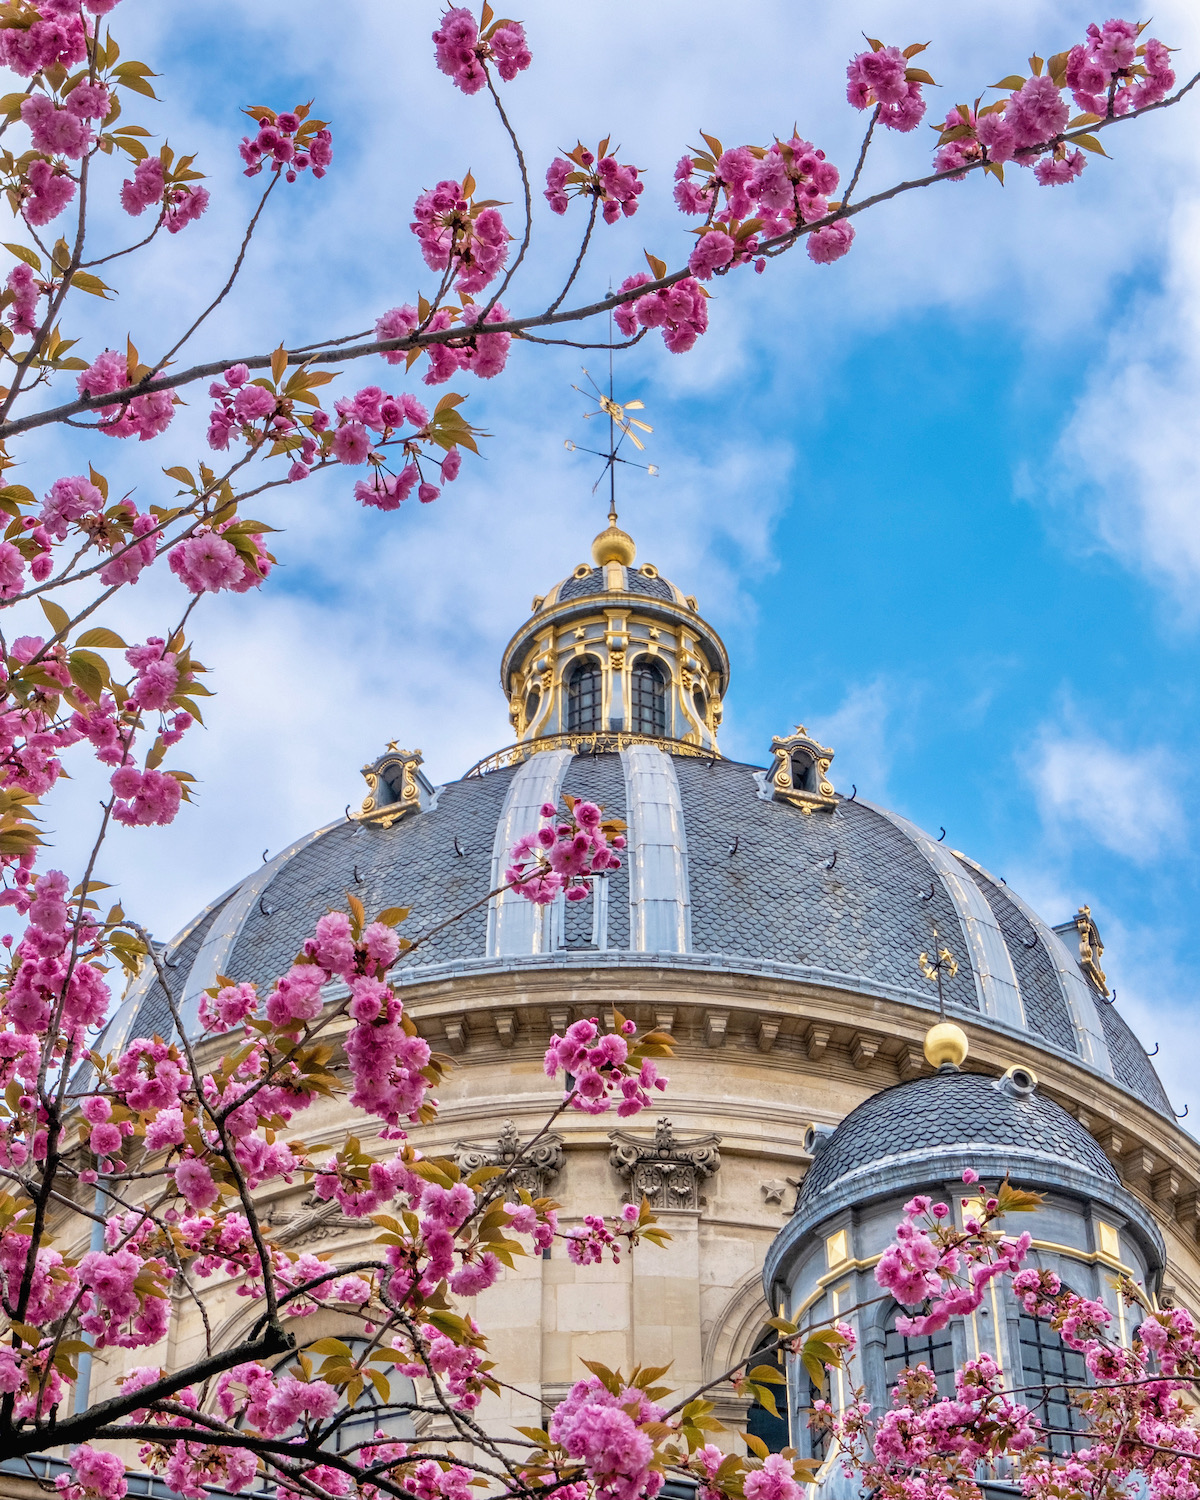 institut de france cherry blossoms. five friday finds from france features the new provence glory book and french summer straw totes